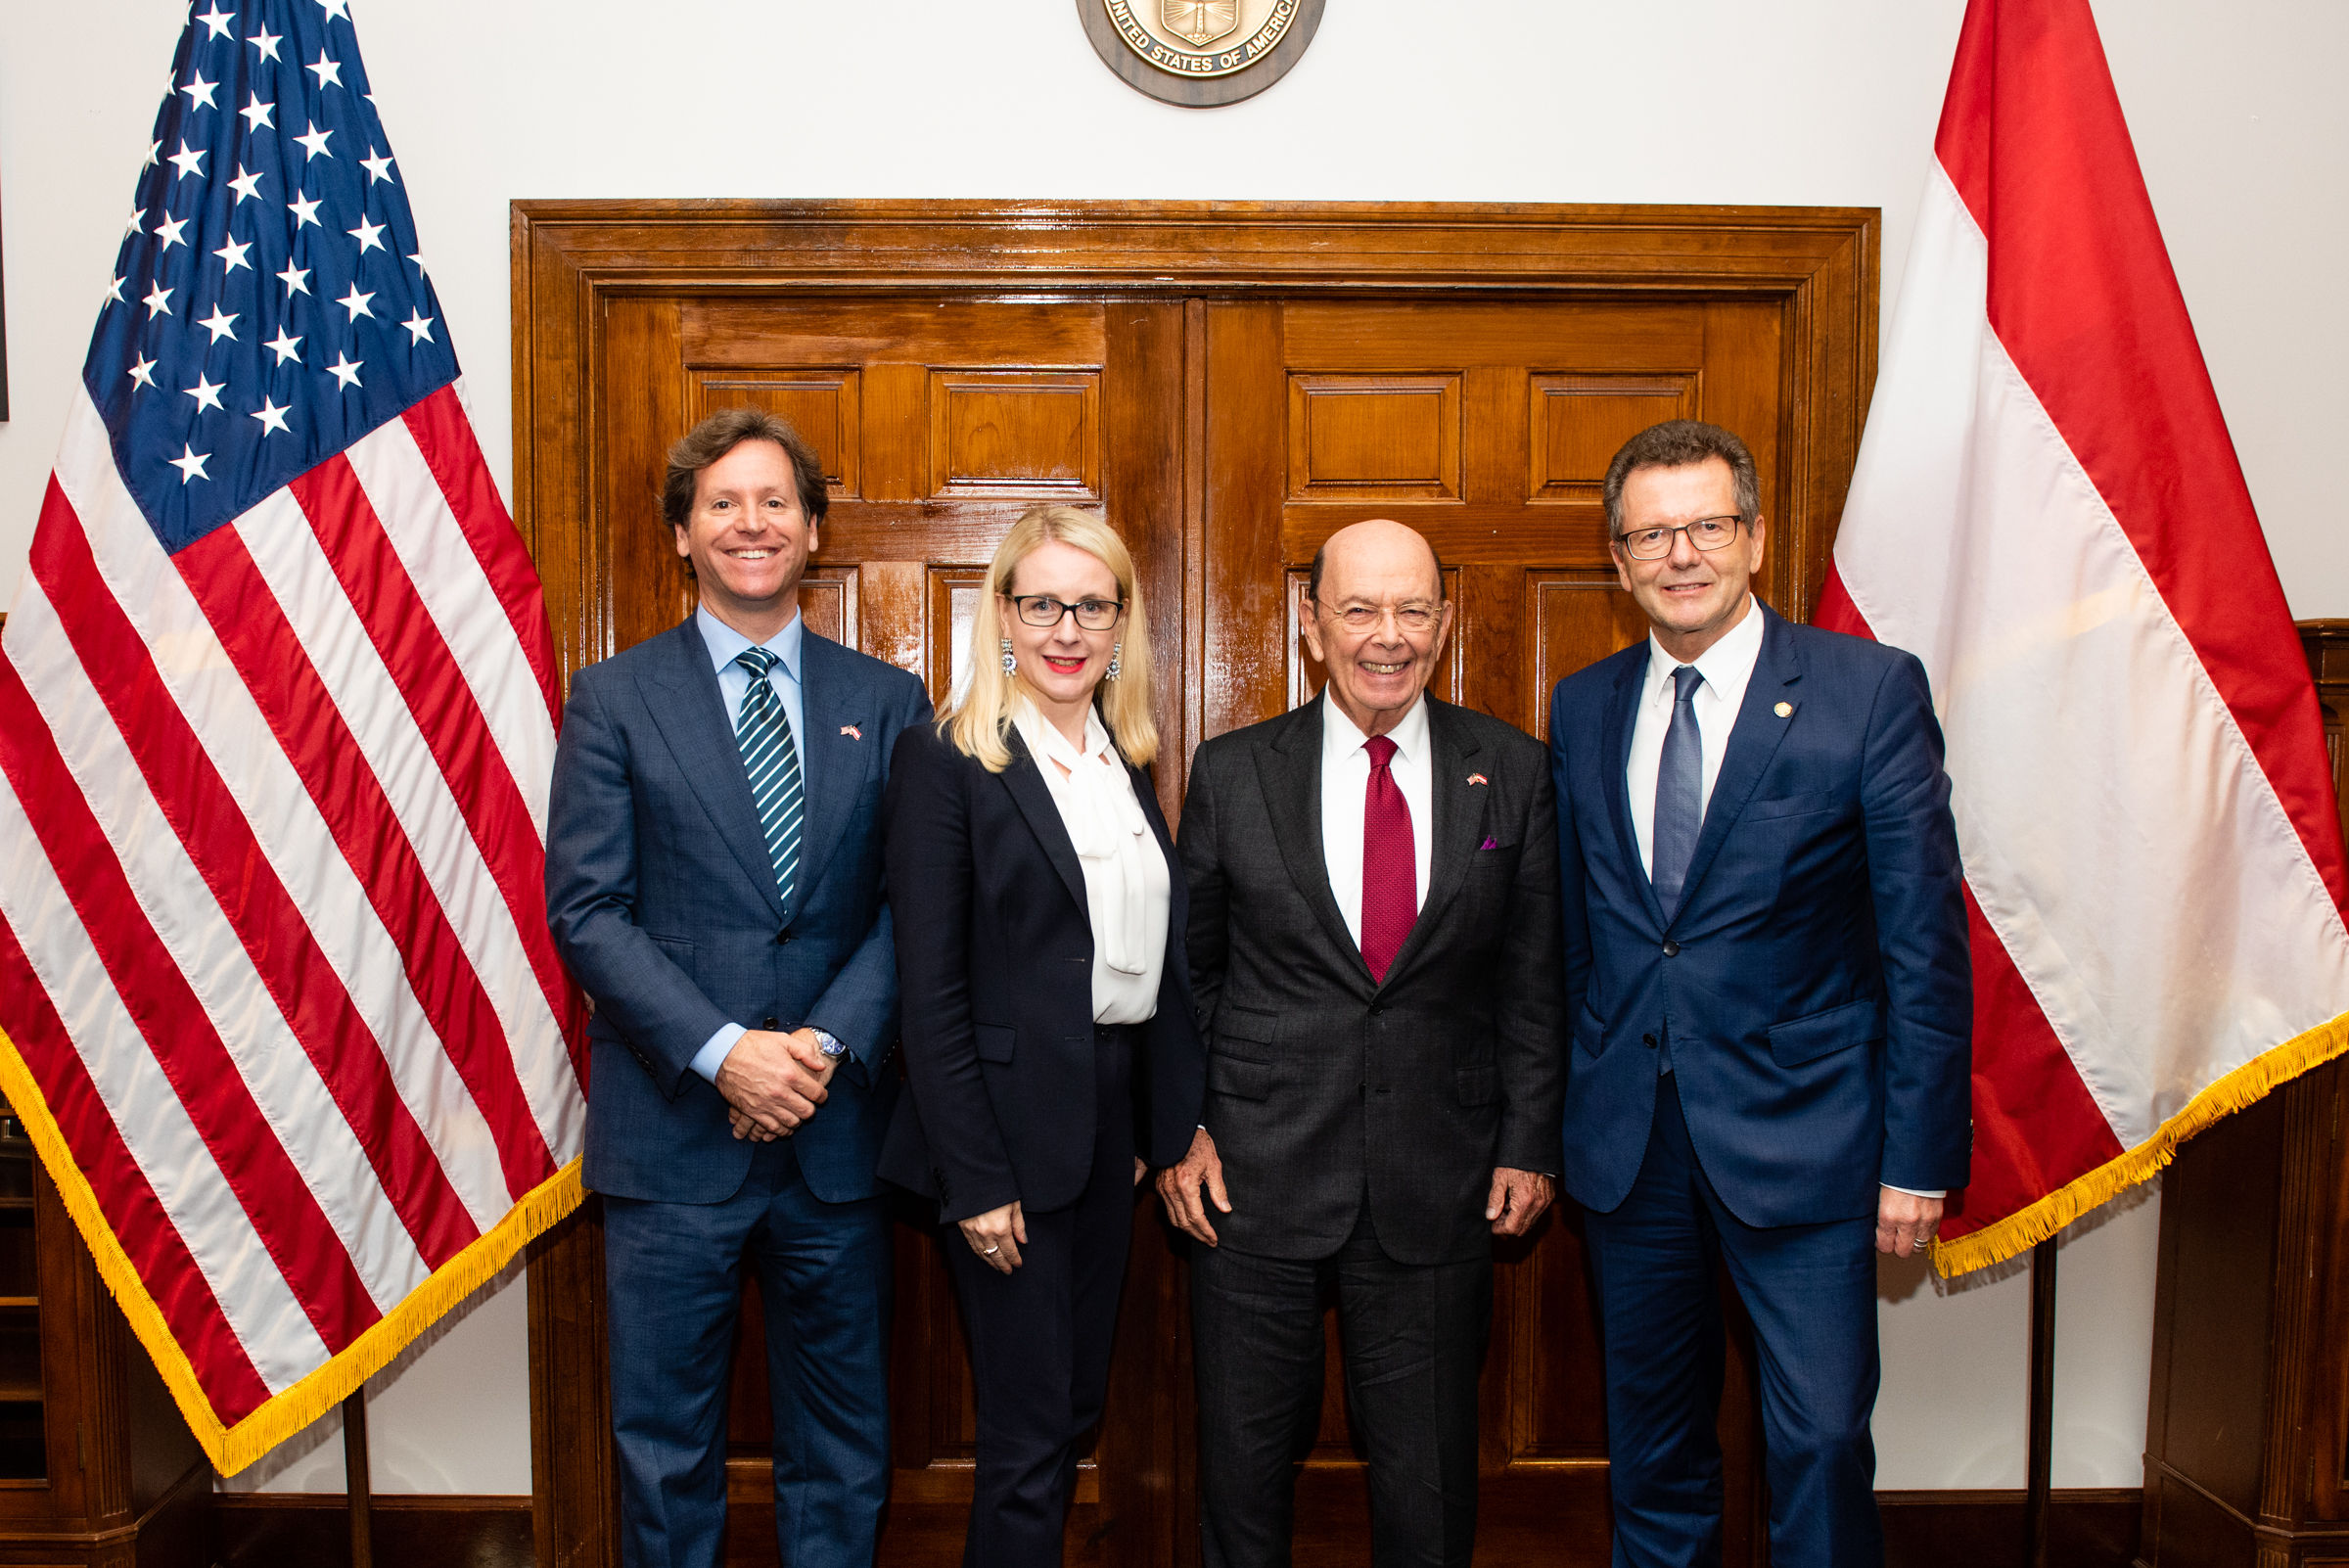 From left to right: U.S. Ambassador to Austria Trevor Traina, Federal Minister for Digital and Economic Affairs Margarete Schramböck, U.S. Secretary of Commerce Wilbur Ross, and Austrian Ambassador Wolfgang Waldner (c) Philipp Hartberger